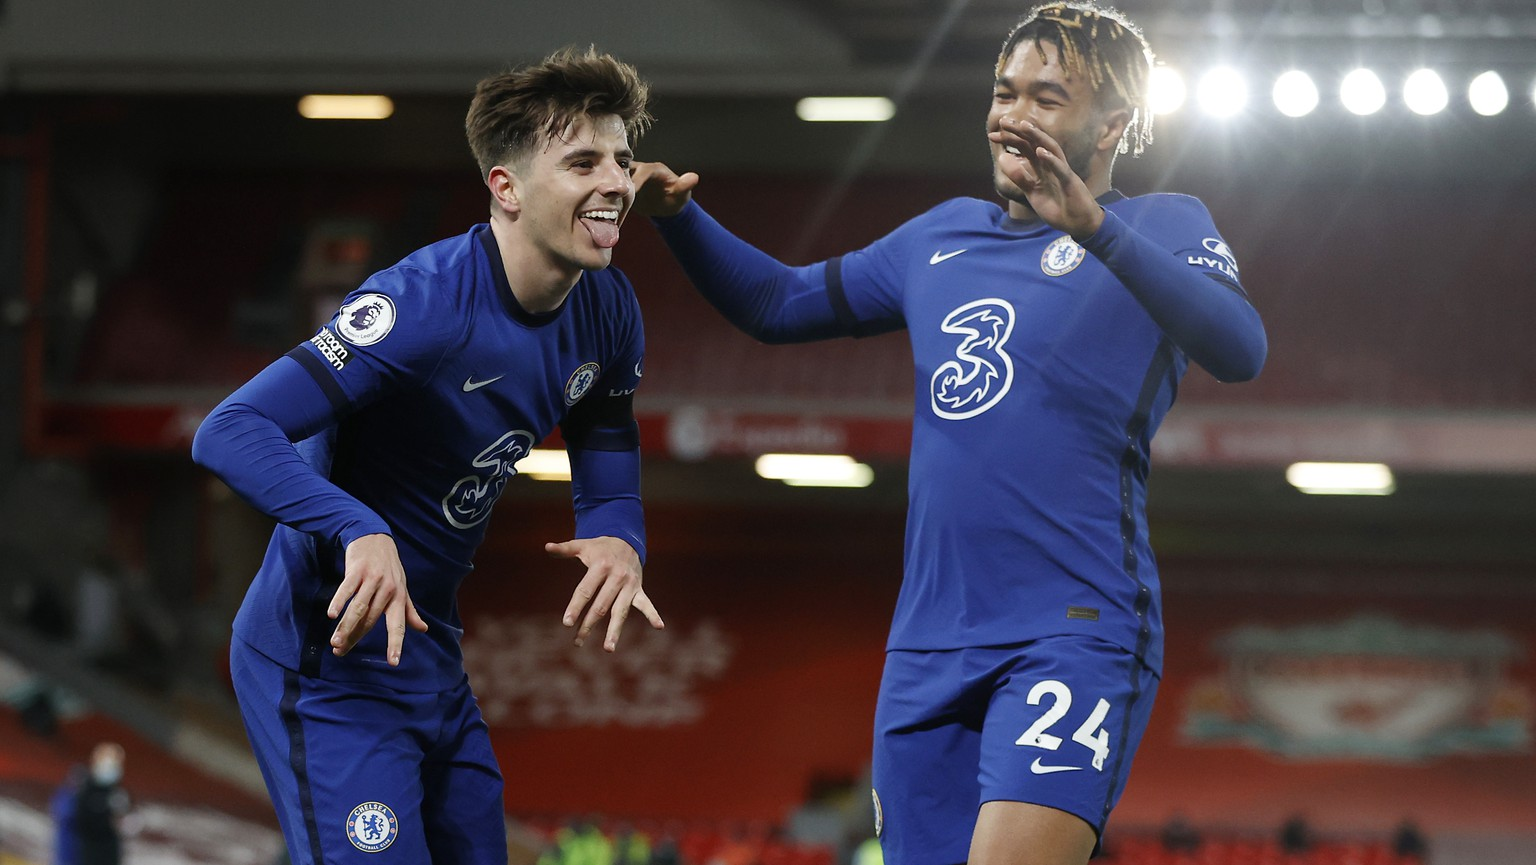 Chelsea's Mason Mount, left, celebrates with his teammate Reece James after scoring his side's opening goal during the English Premier League soccer match between Liverpool and Chelsea at Anfield stadium in Liverpool, England, Thursday, March 4, 2021. (Phil Noble, Pool via AP)